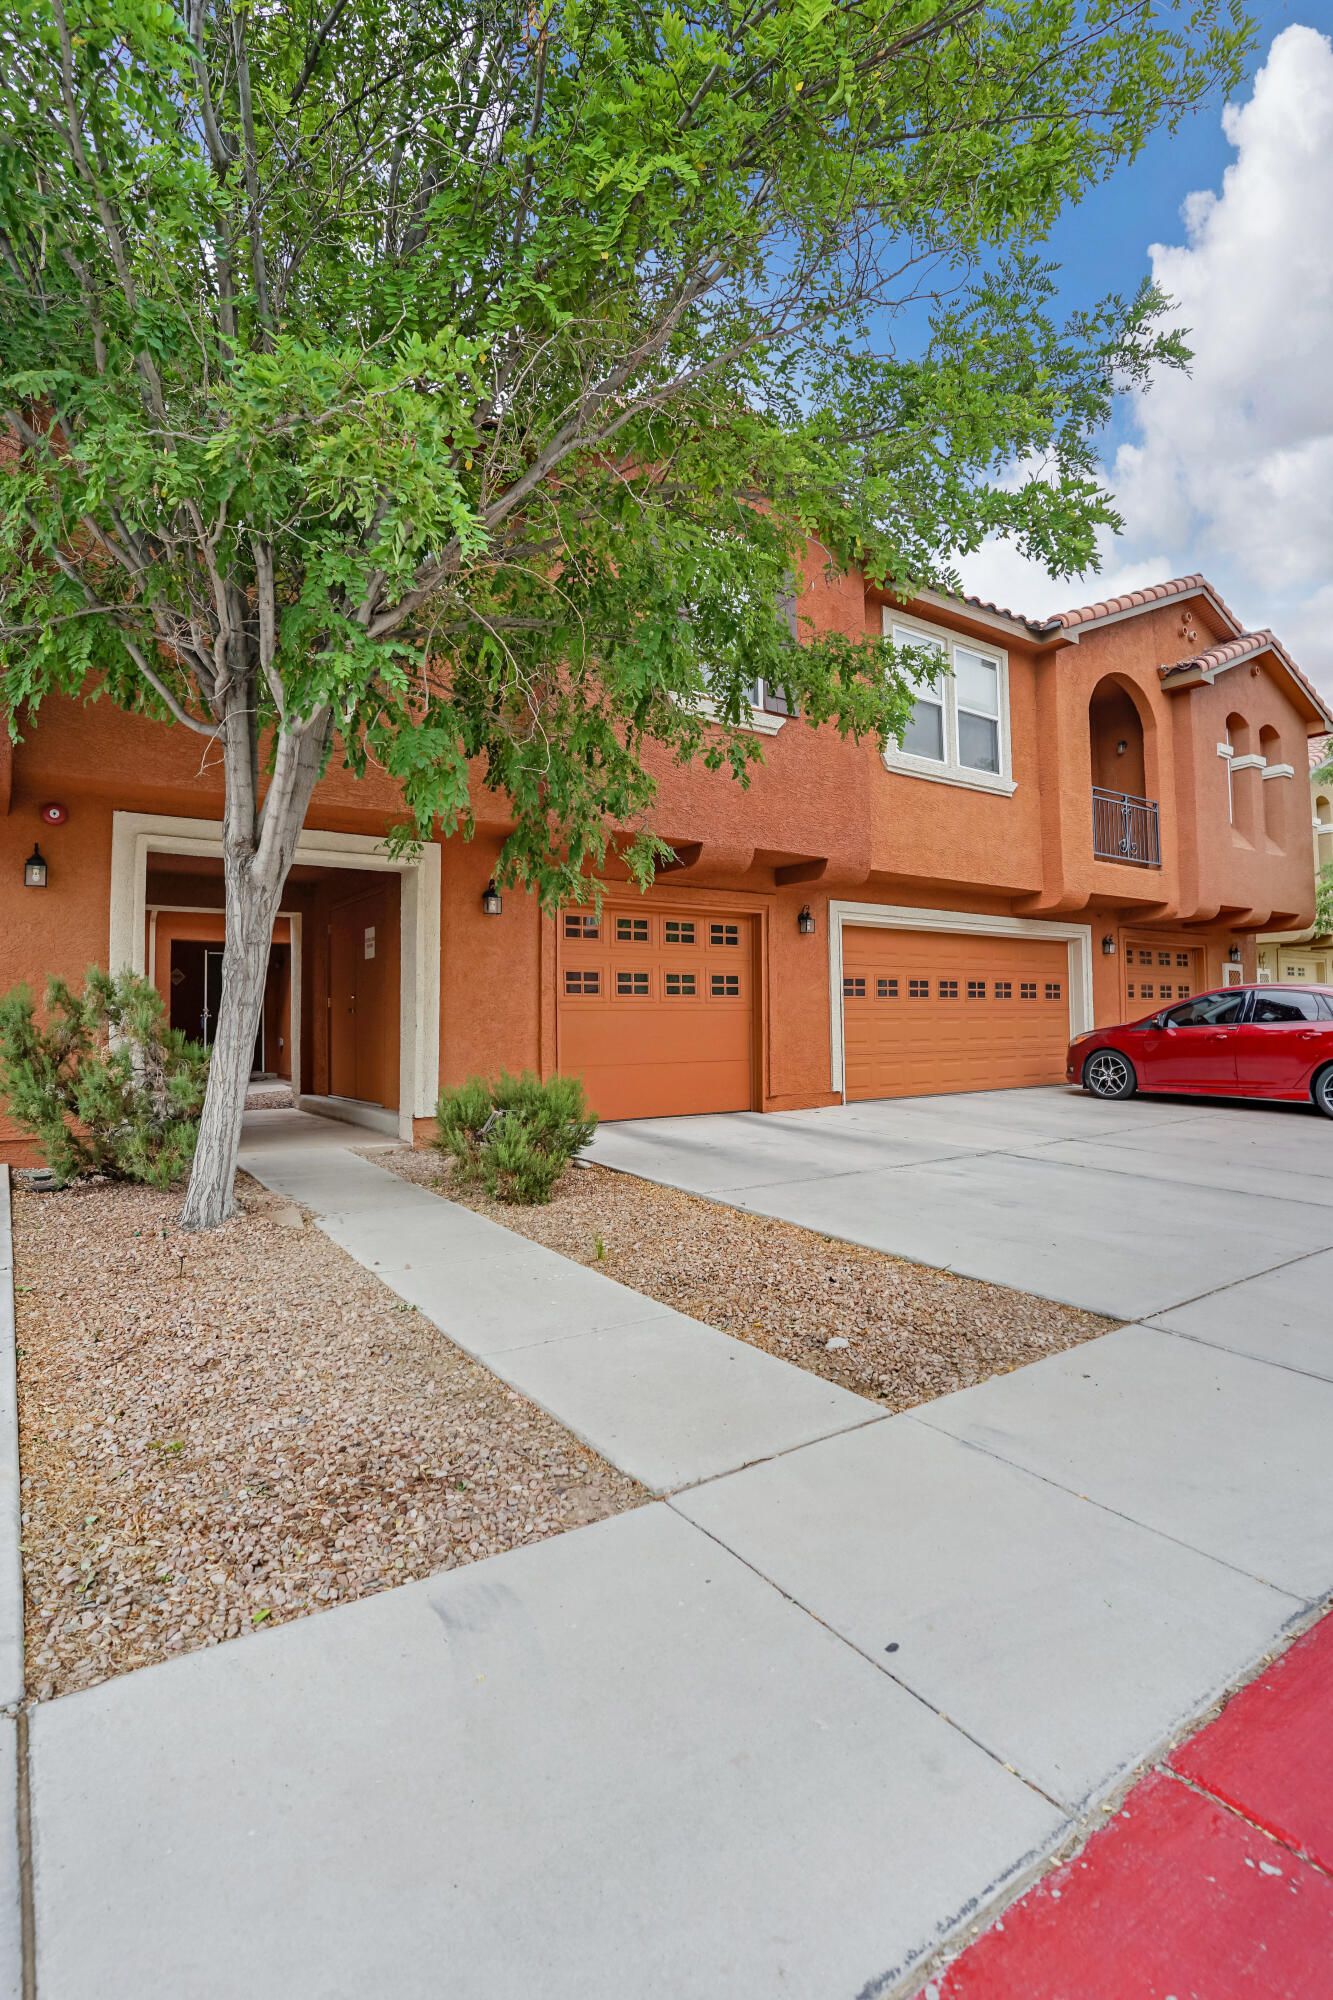 Multiple Offers Received! Move-in ready! Well maintained three bedroom two and a half bath condo located in the gated Villas Community! The main floor features an open concept living room, kitchen, dining room perfect for entertaining! The kitchen features beautiful 42'' upper cabinets, granite countertops, and a pantry. The downstairs also has a powder bath, laundry room, and one car garage. The upper level features all the bedrooms and full baths. Master Bedroom features an ensuite with double vanity and garden tub/ shower combo. Relax on the back patio after a long day! All appliances stay!  HOA  features - Community Pool - Maintenance of Exterior of Residence - Maintenance of Front Landscape - Clubhouse - Common Area - and Gated Security.